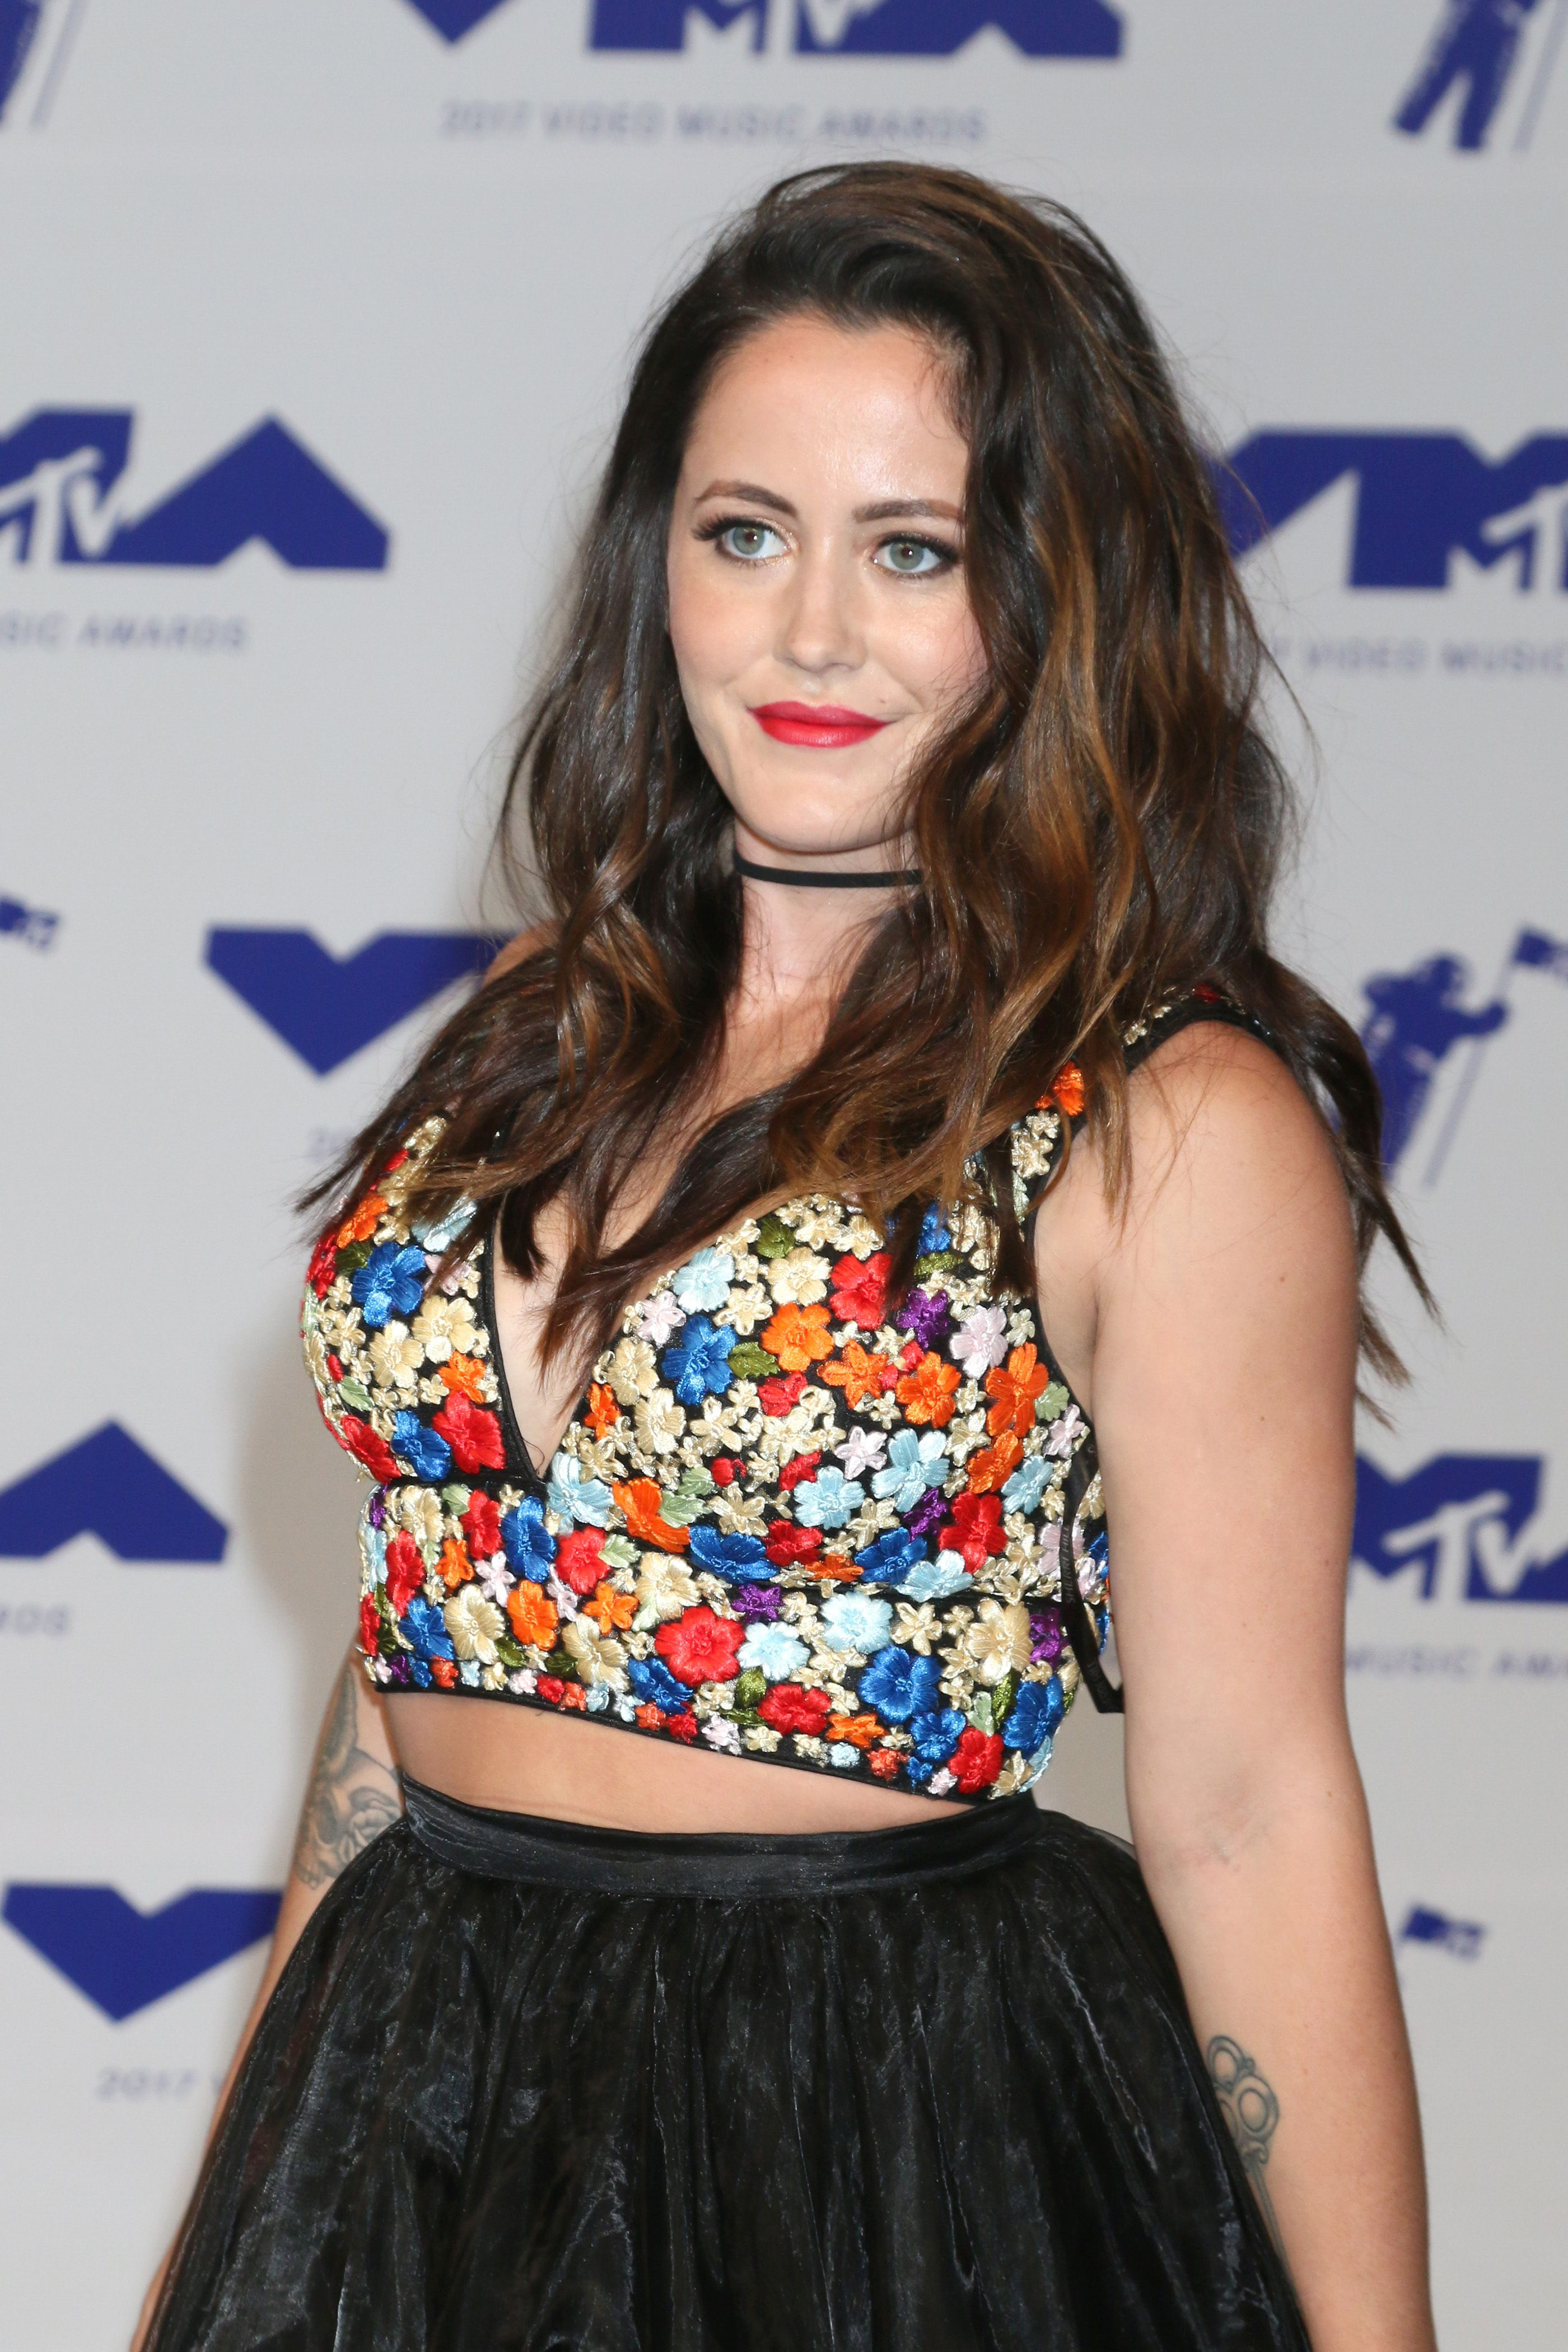 Jenelle Evans wears a floral crop top and black skirt.